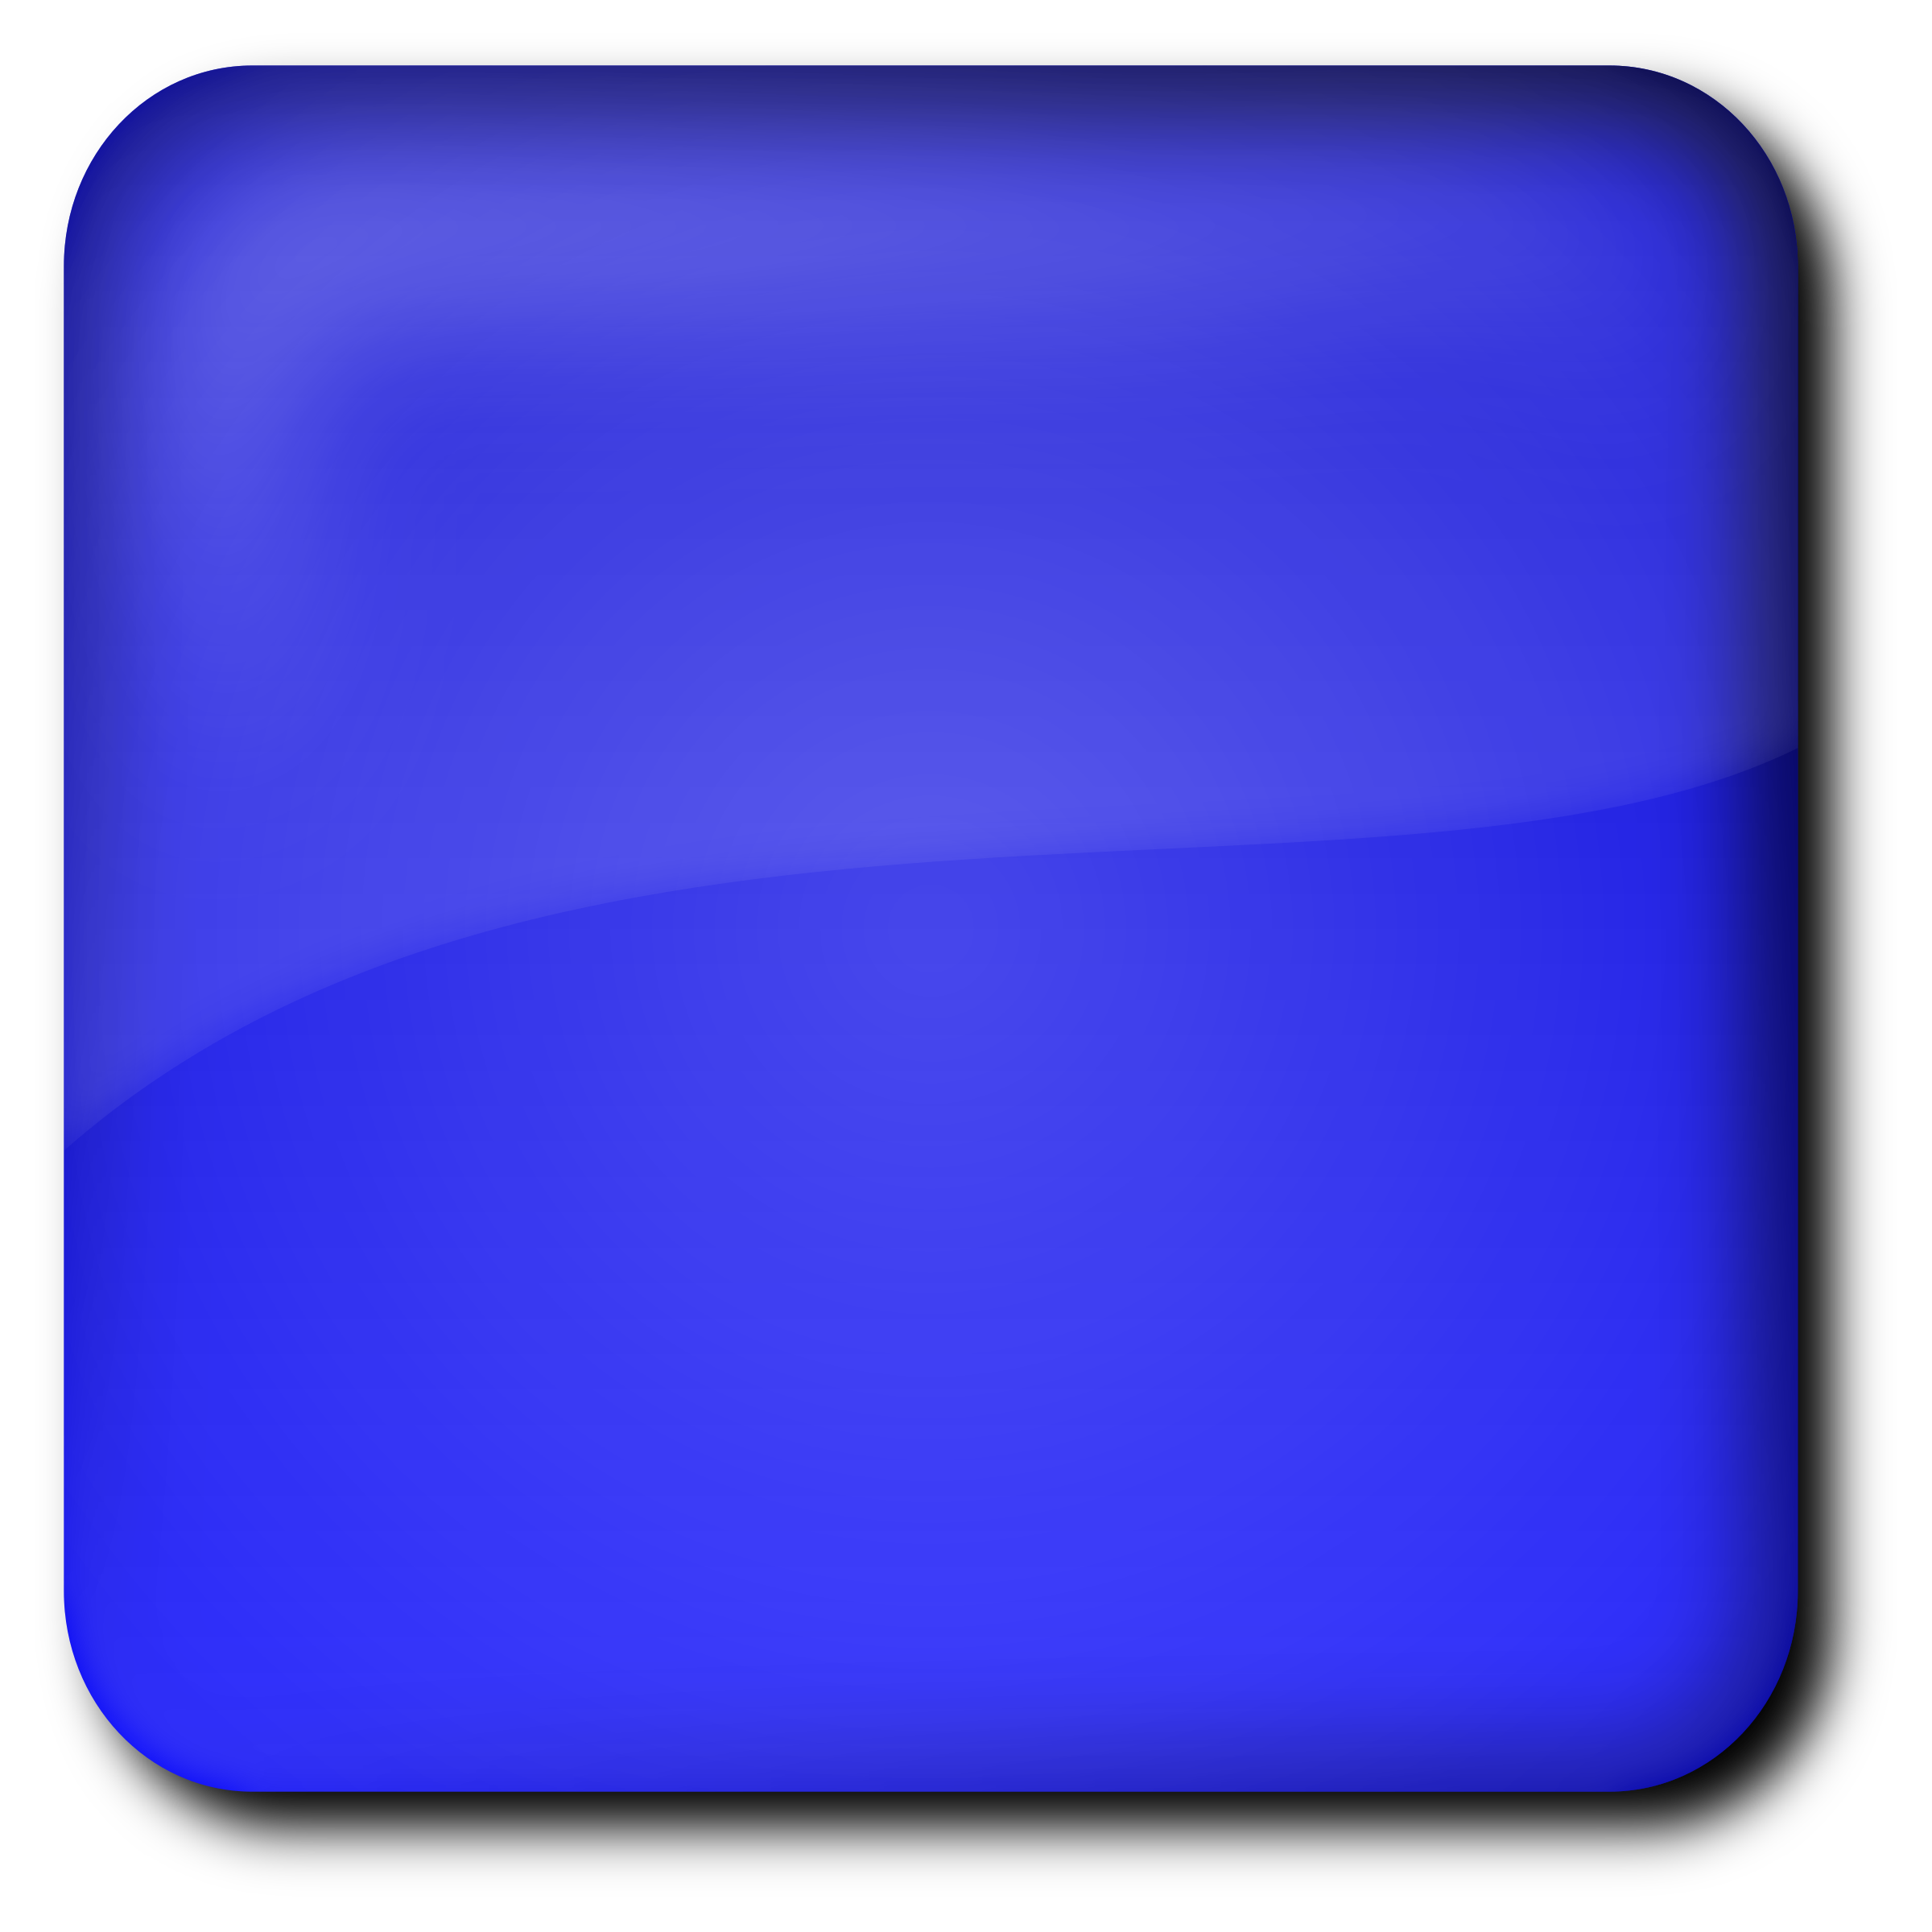 Square Png image #25148